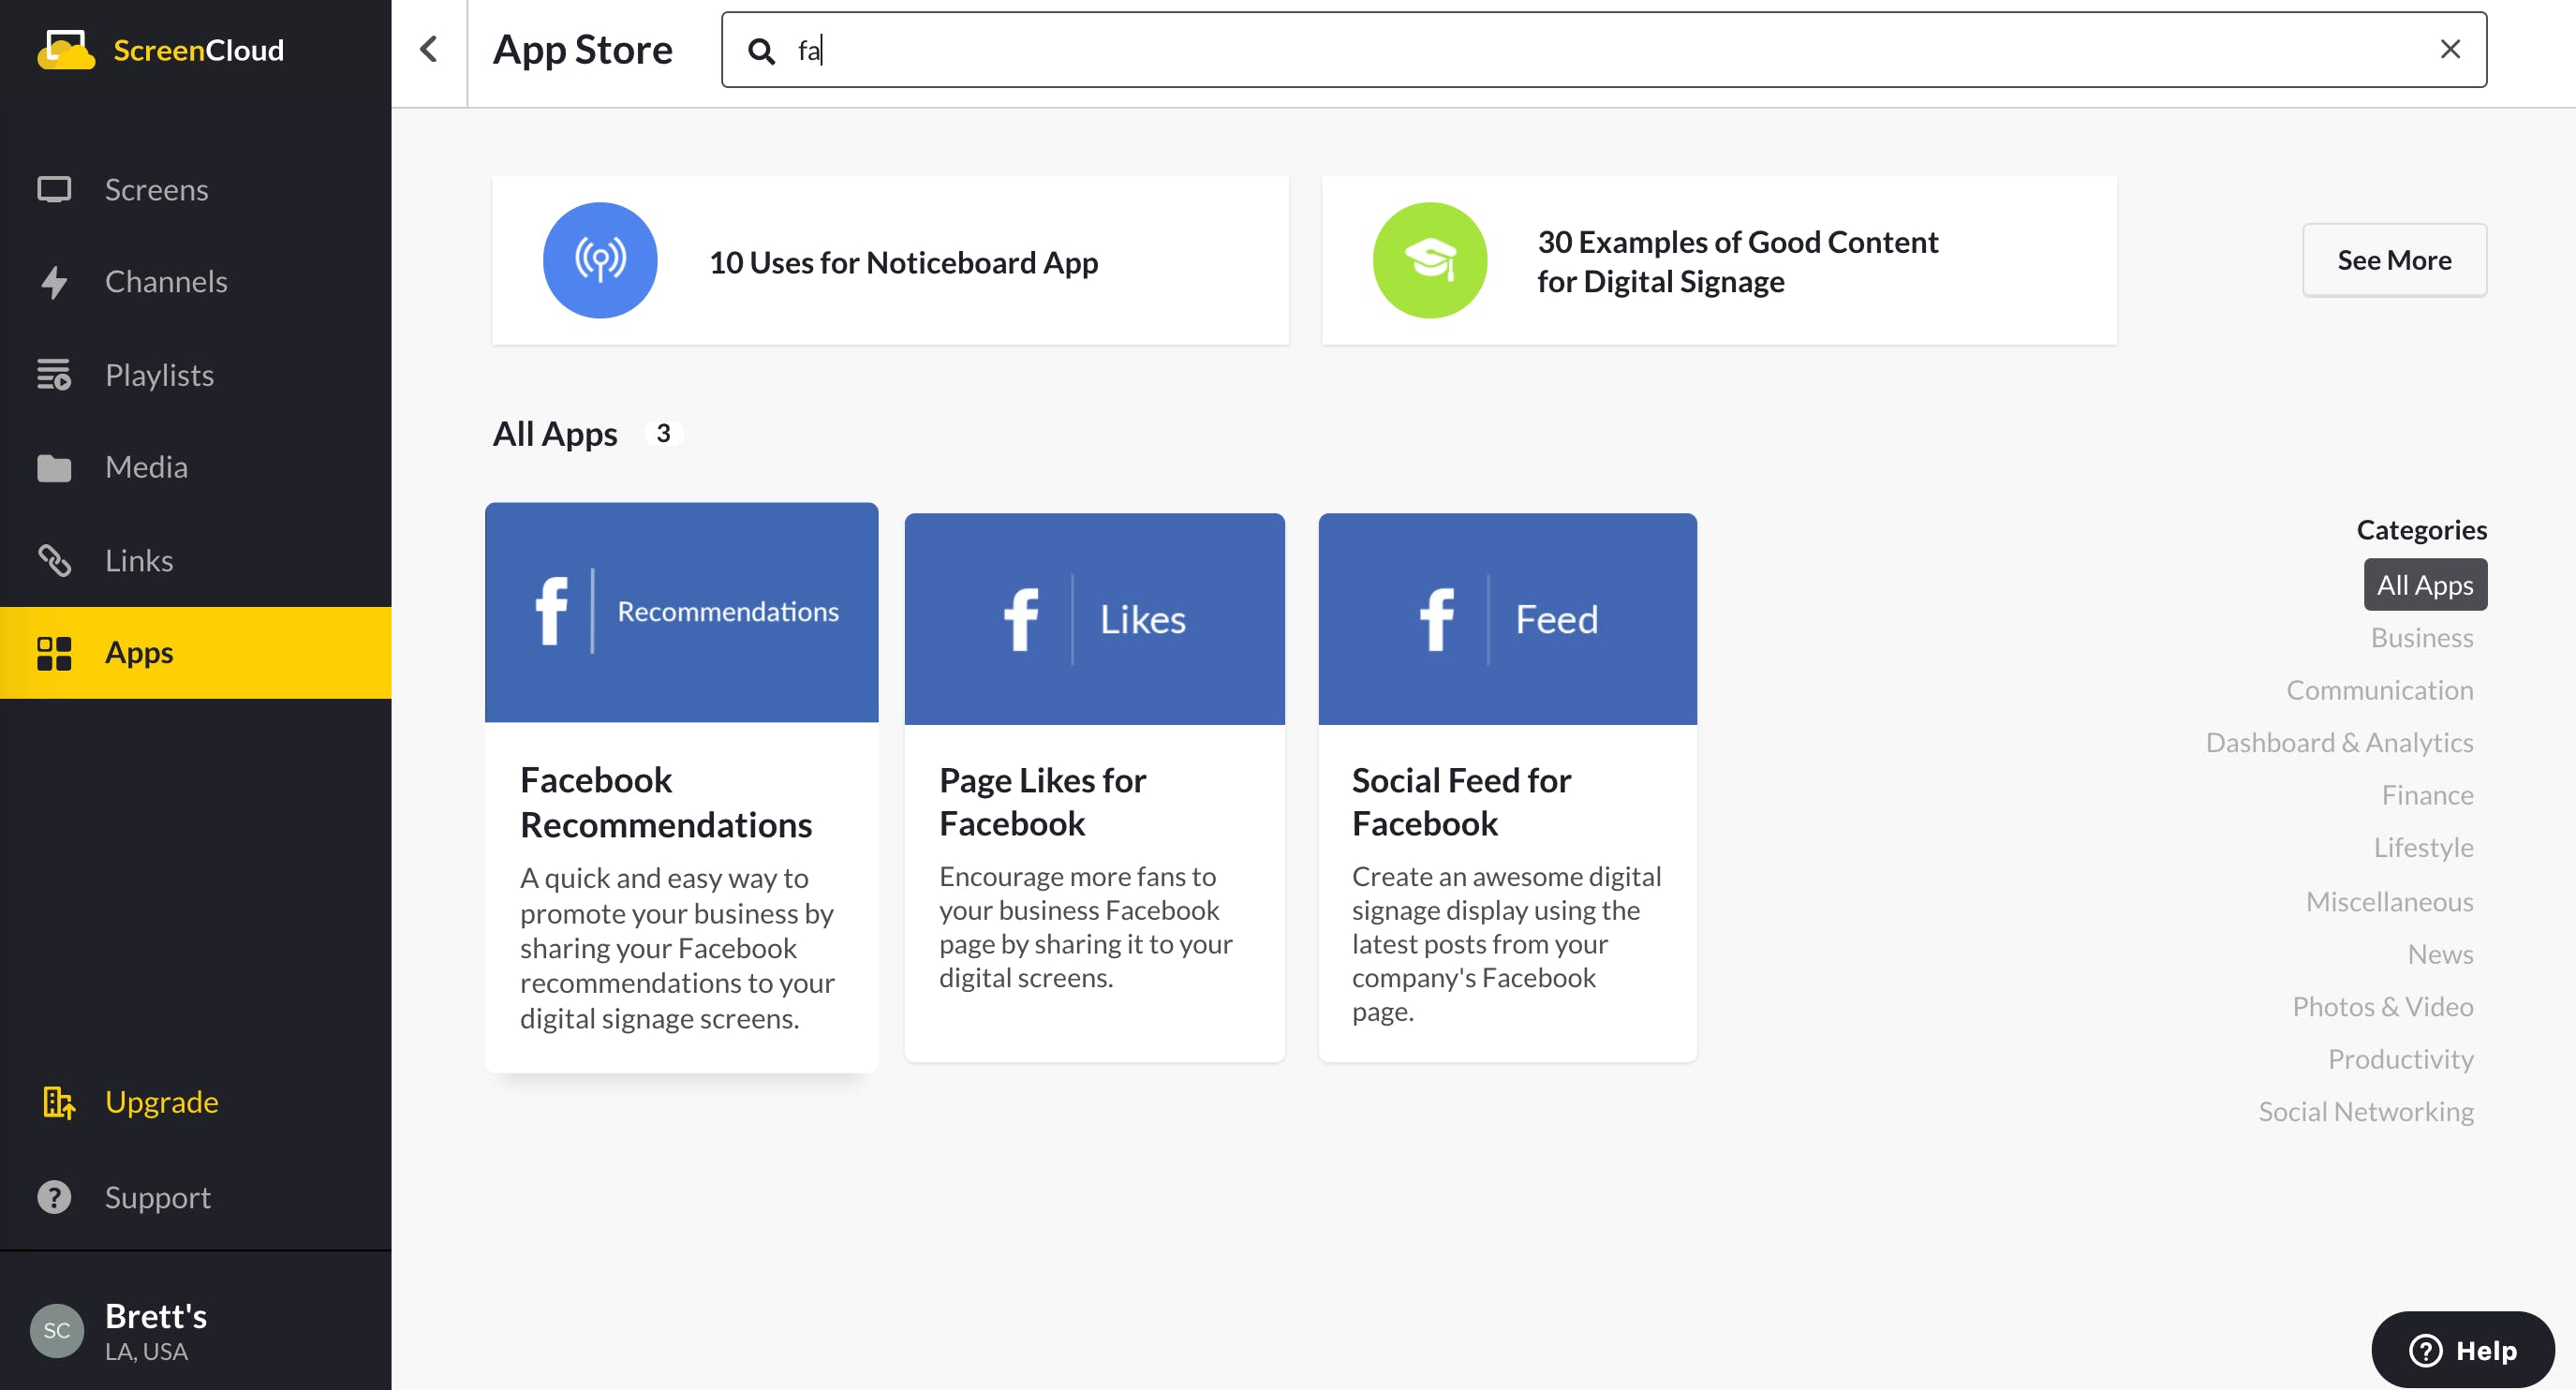 Facebook Recommendations App Guide - App Store 5.13.2020.png